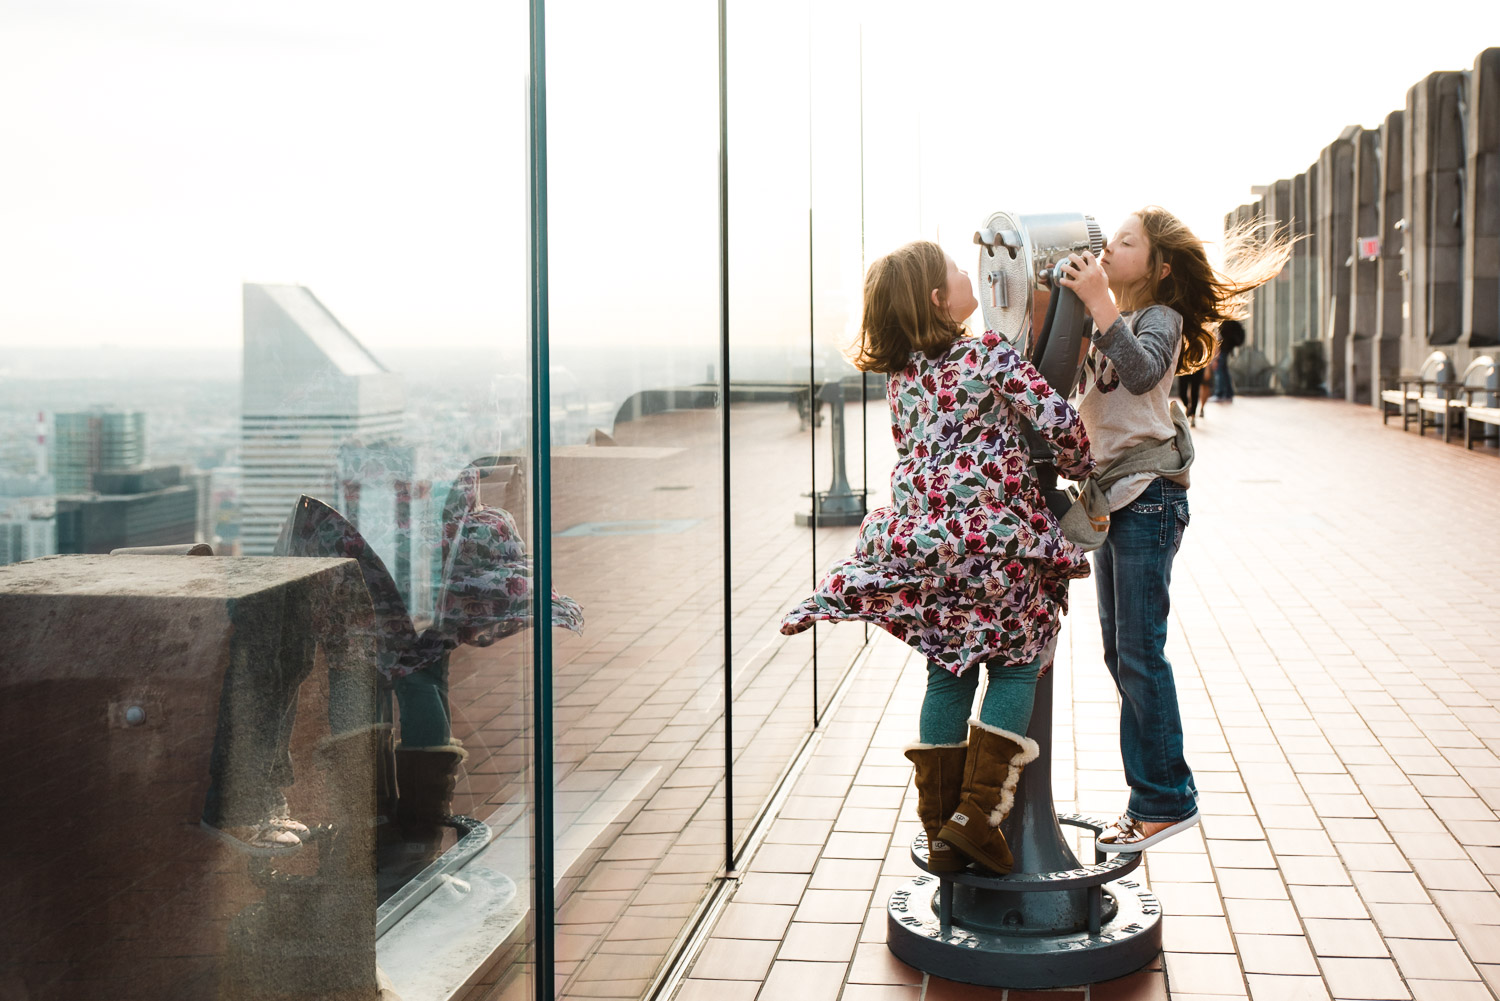 Sisters swinging on a telescope at Top of the Rock.